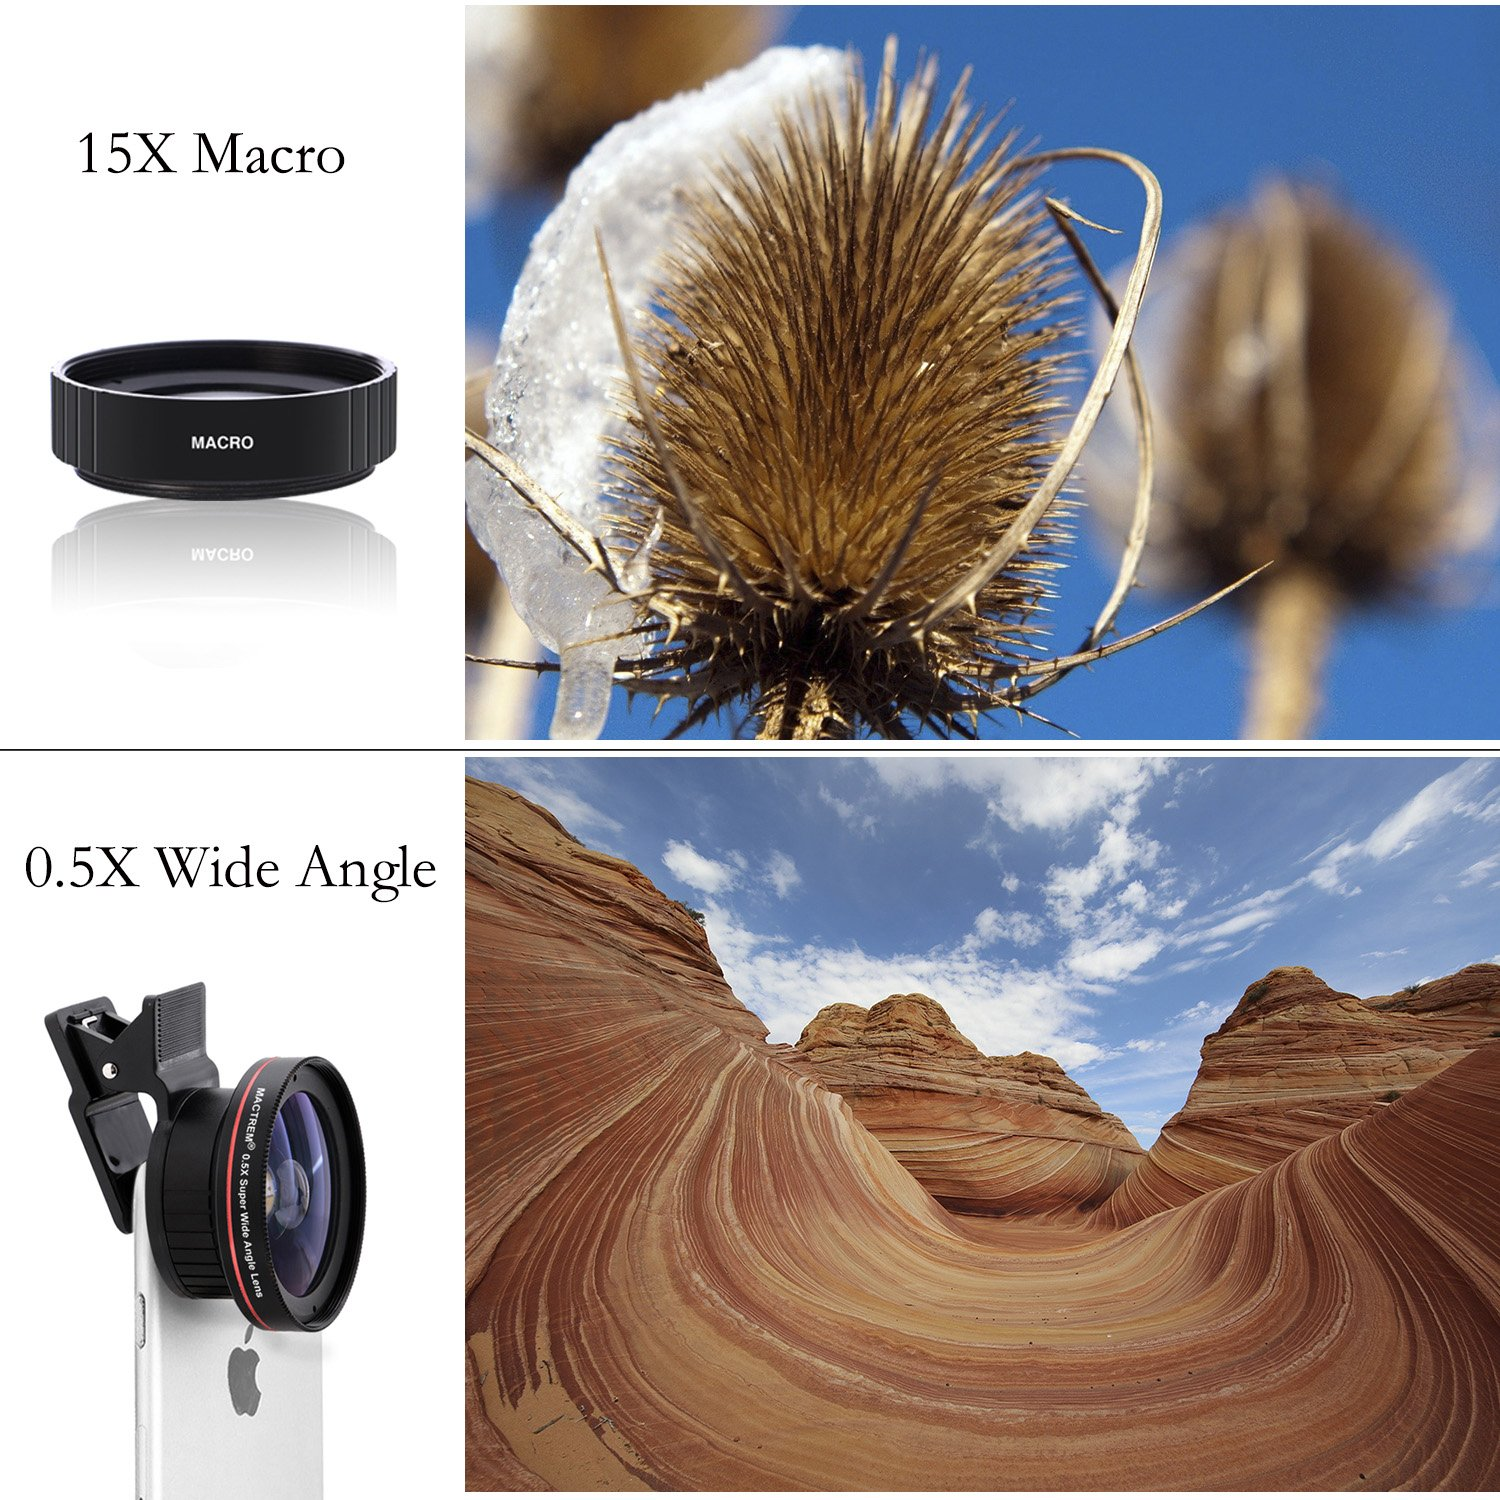 [Upgraded Version] Clip on Universal Smart Phone HD Camera Lens Kit 2 in 1 (Mactrem 0.5x Wide Angle Lens, 15x Macro Lens) Works with Most Smartphones, for iPhone 7/7 Plus / 6 / 6s / 6s Plus / 5 / 5s / 4 / SE / Samsung S7 S6 S5 Smartphones